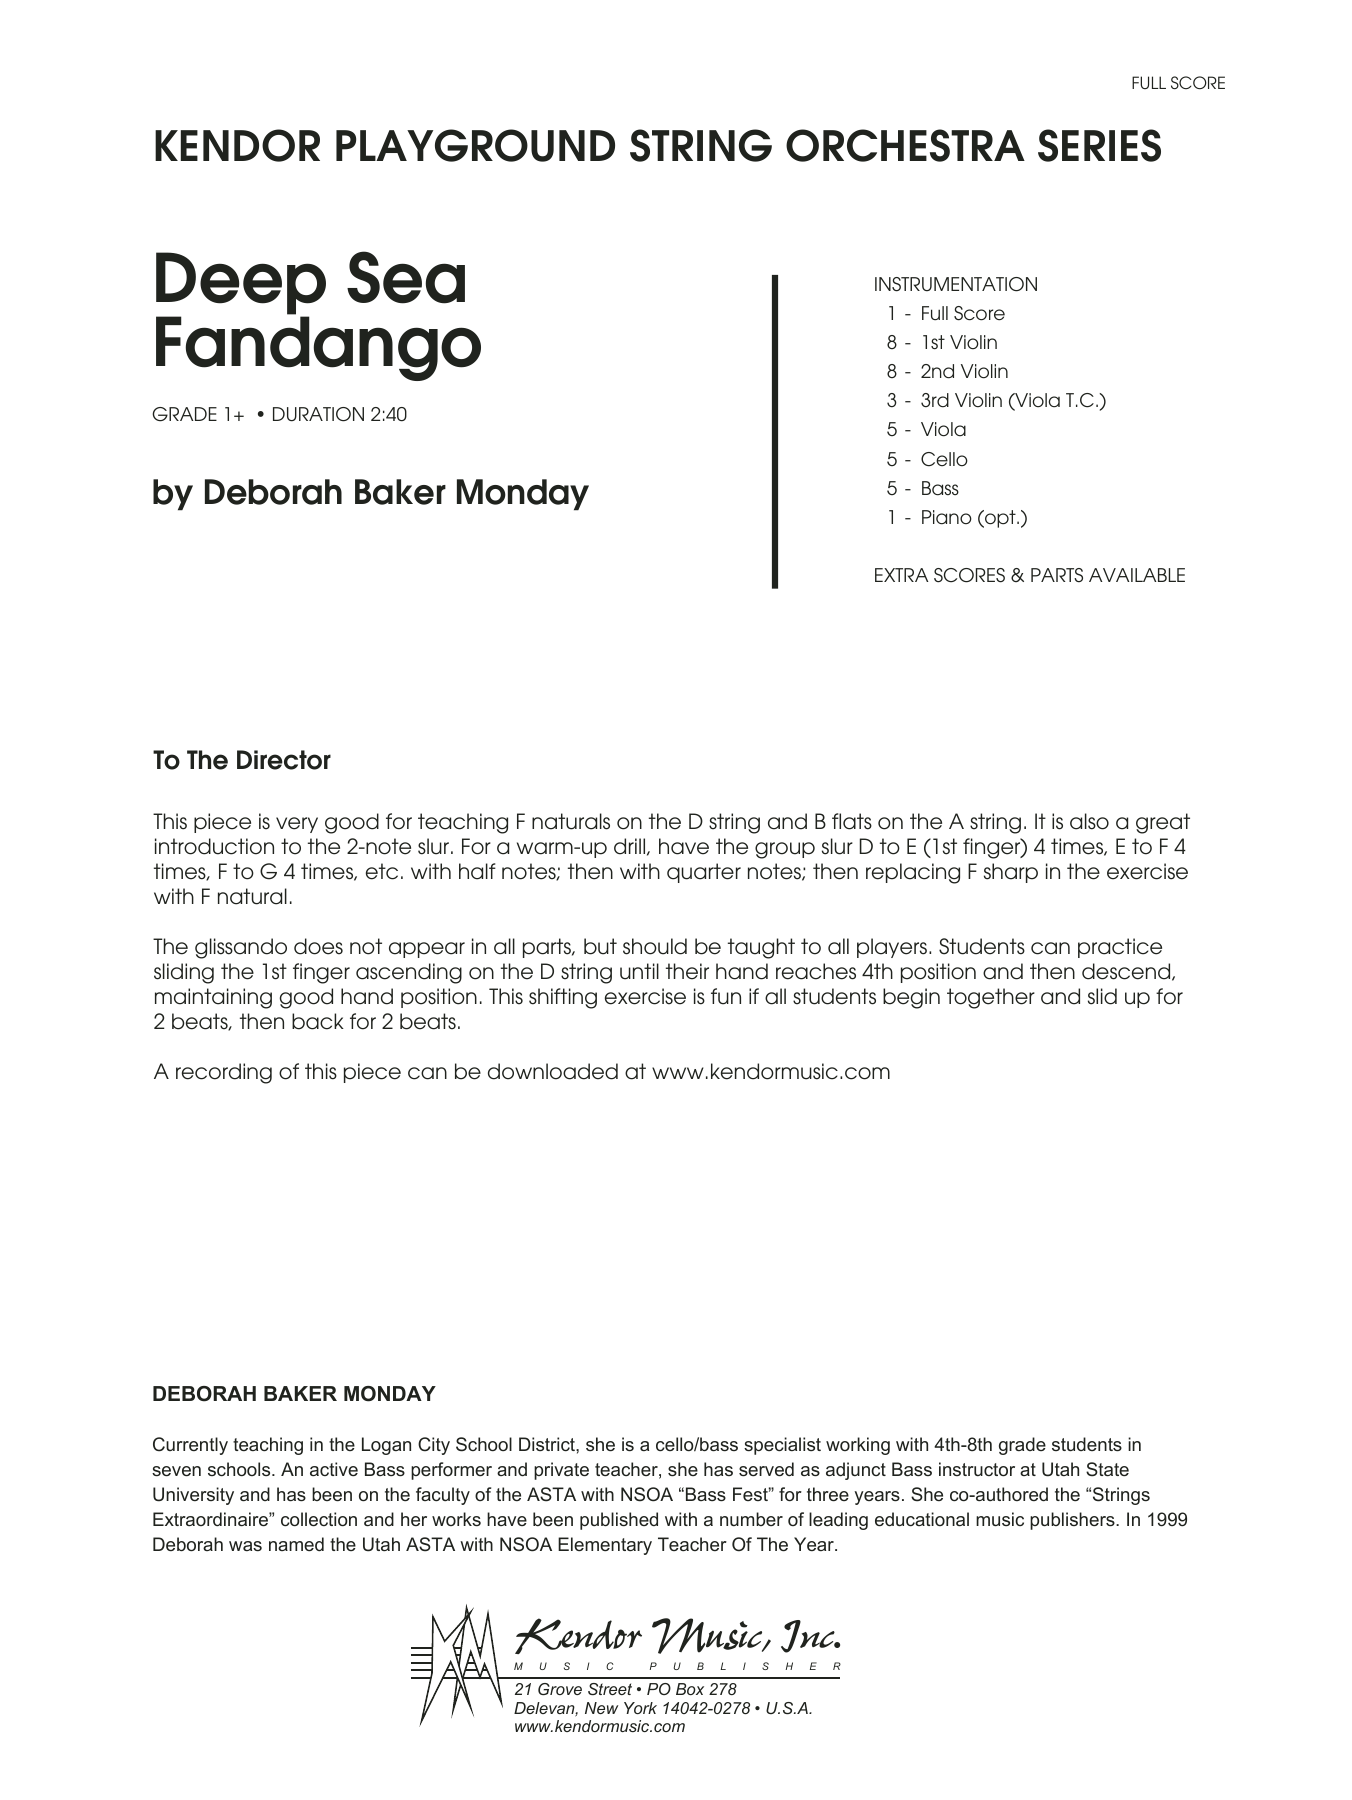 Deep Sea Fandango - Full Score